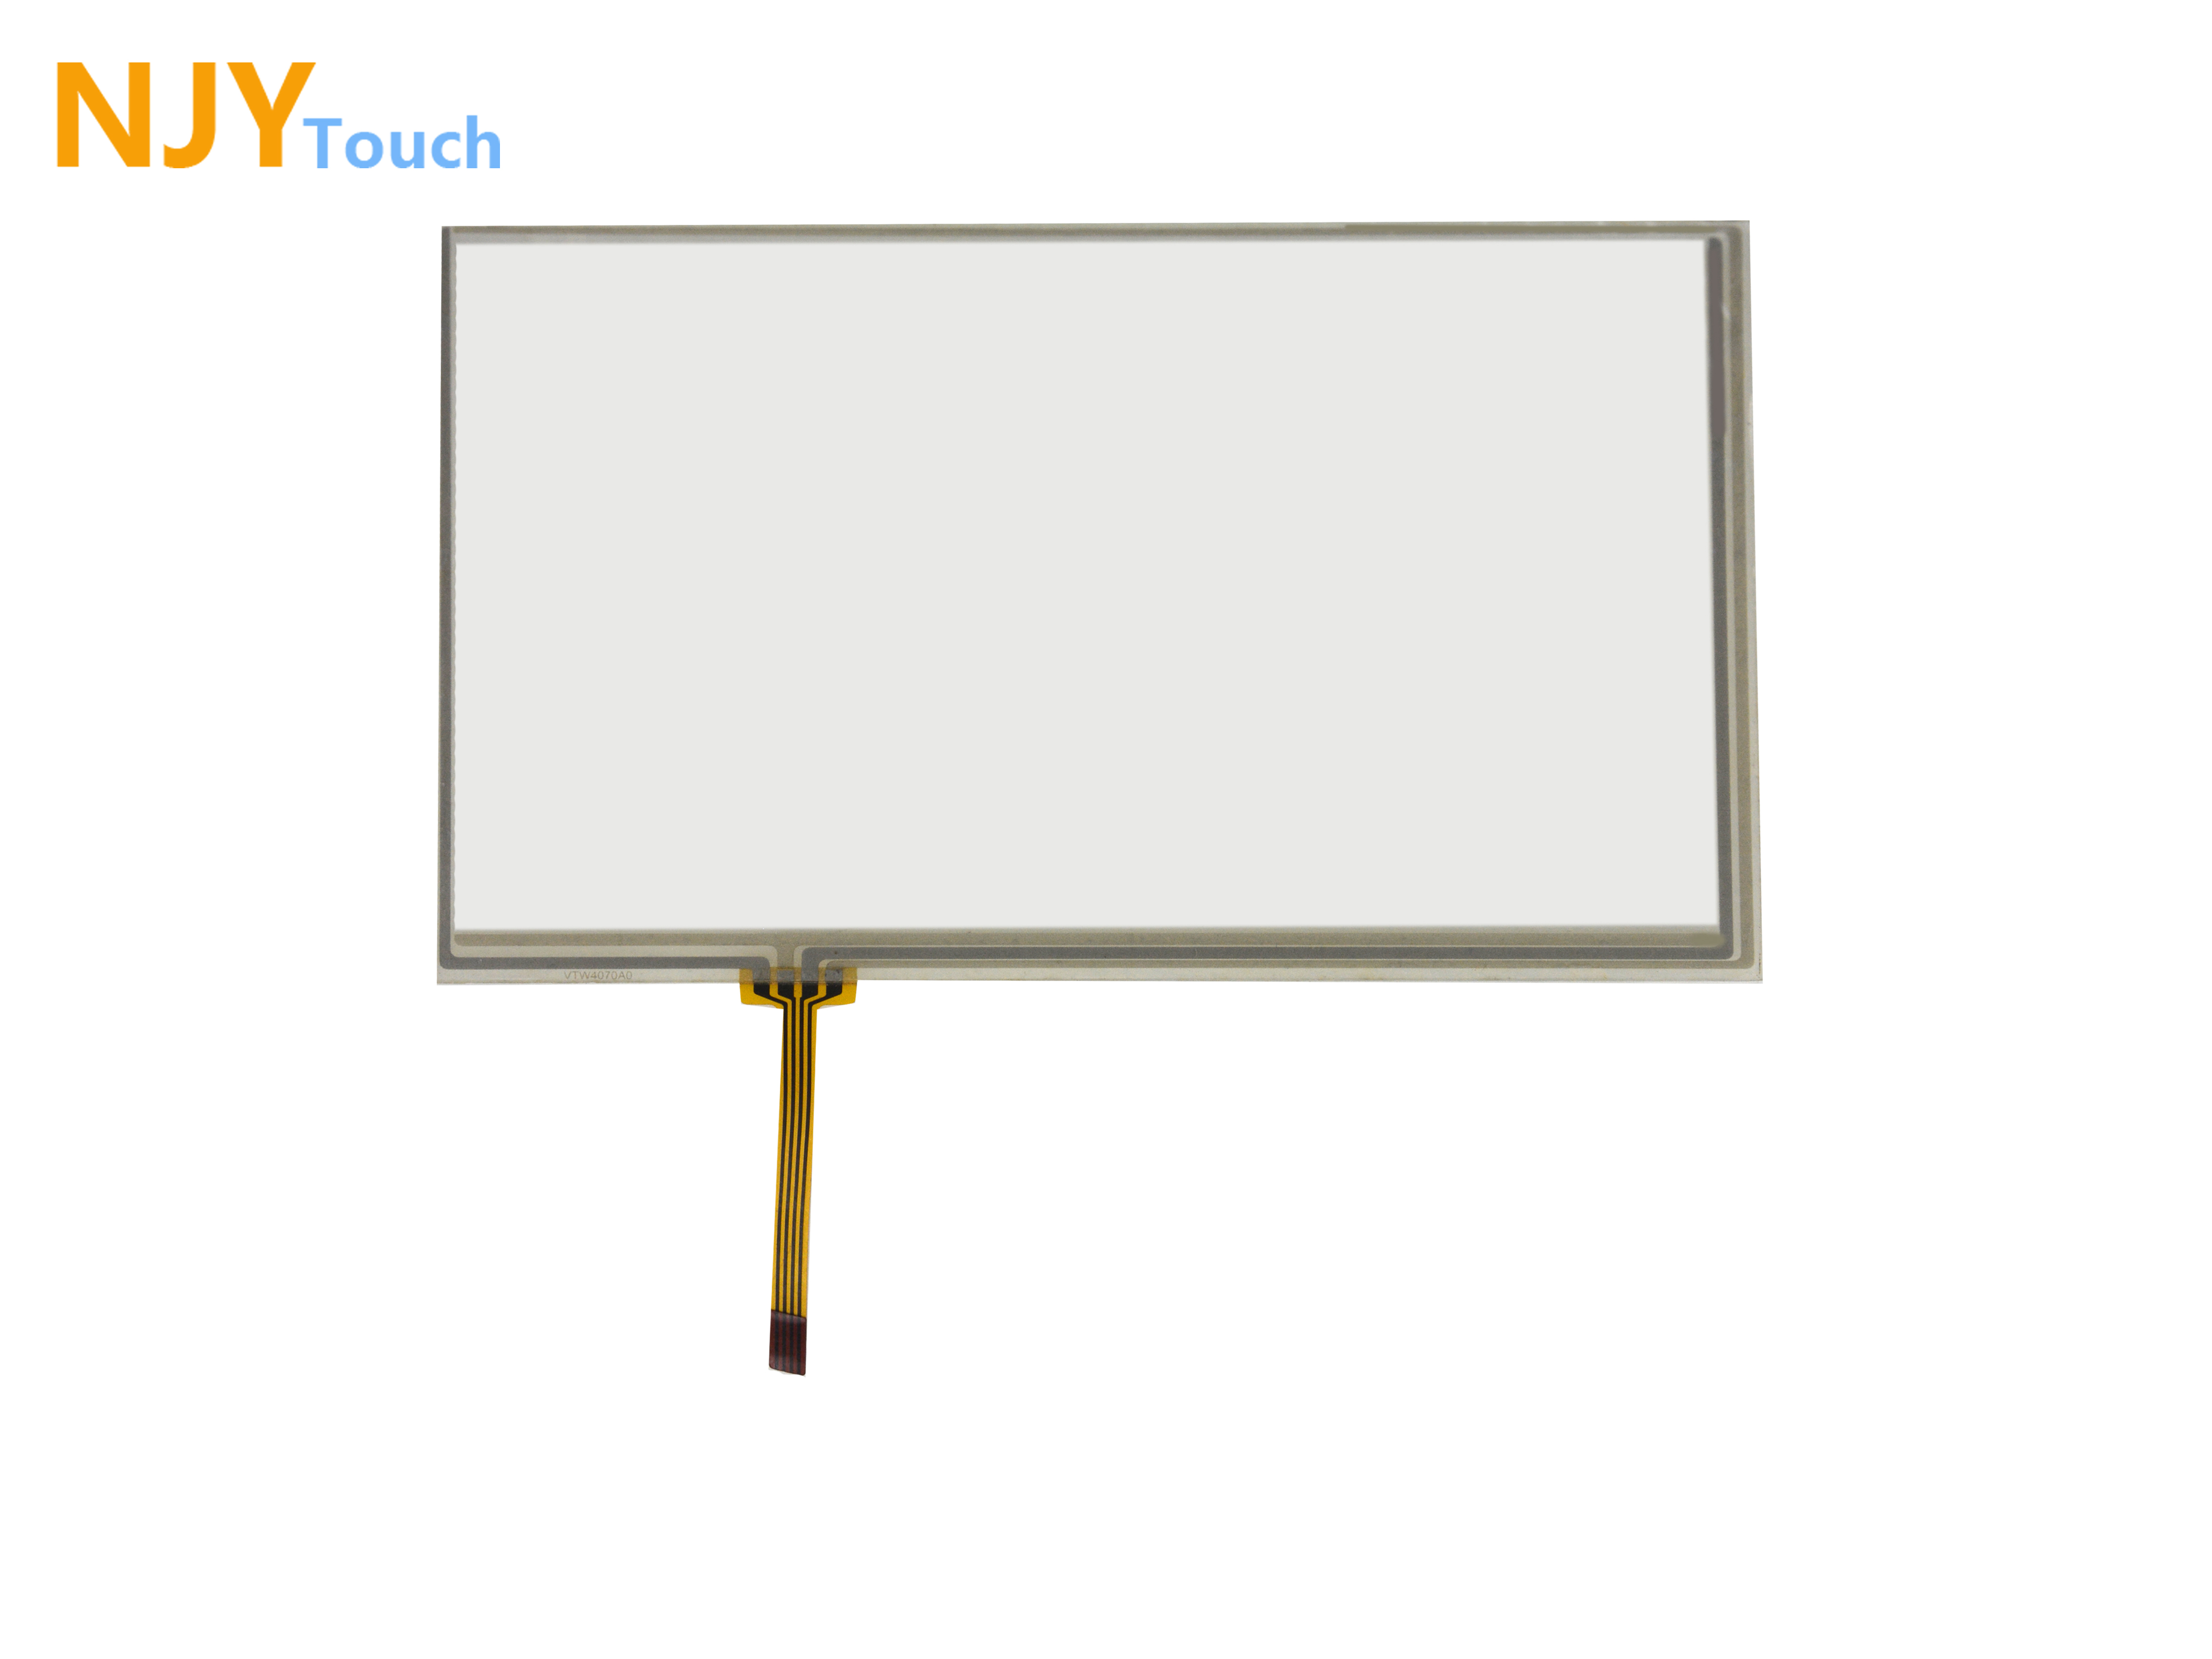 7inch 4 Wire Resistive Touch Panel 165 mm x 104mm Handwriting Screen GPS